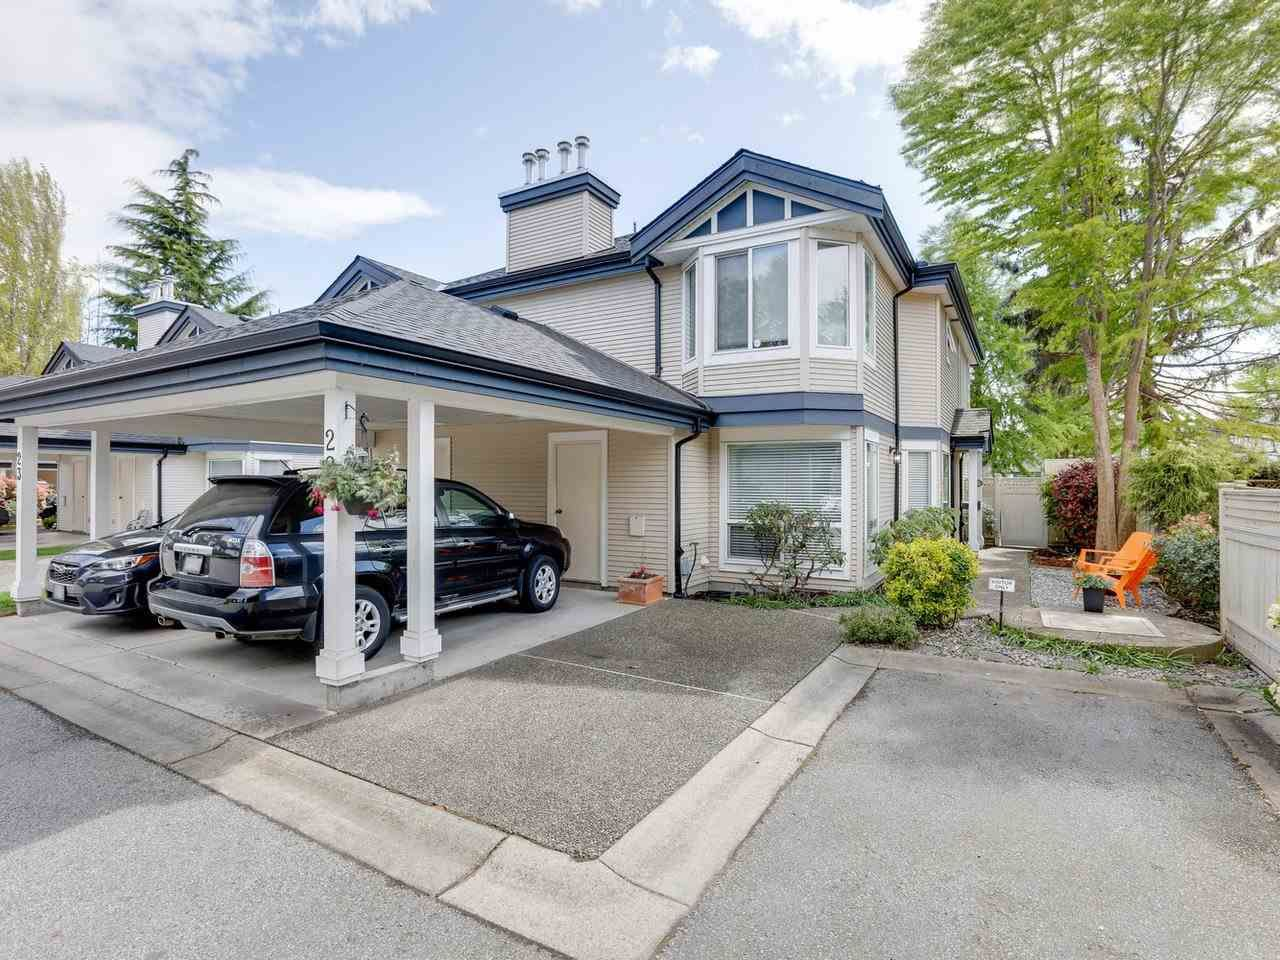 """Main Photo: 22 4748 54A Street in Delta: Delta Manor Townhouse for sale in """"ROSEWOOD"""" (Ladner)  : MLS®# R2452528"""